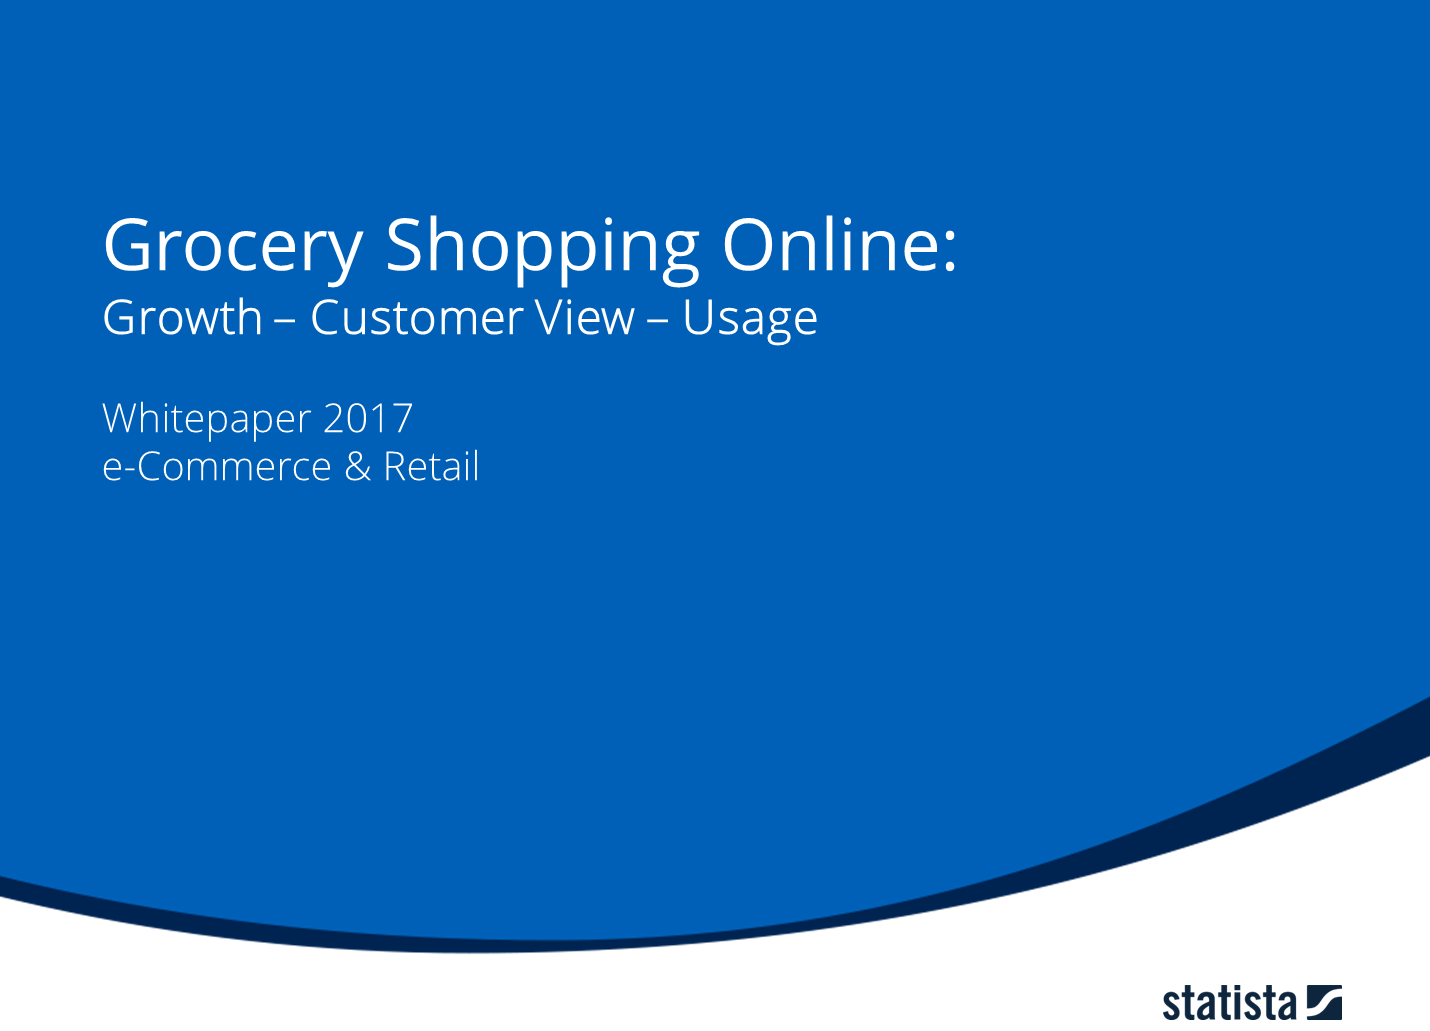 Grocery Shopping Online: Growth - Customer View - Usage